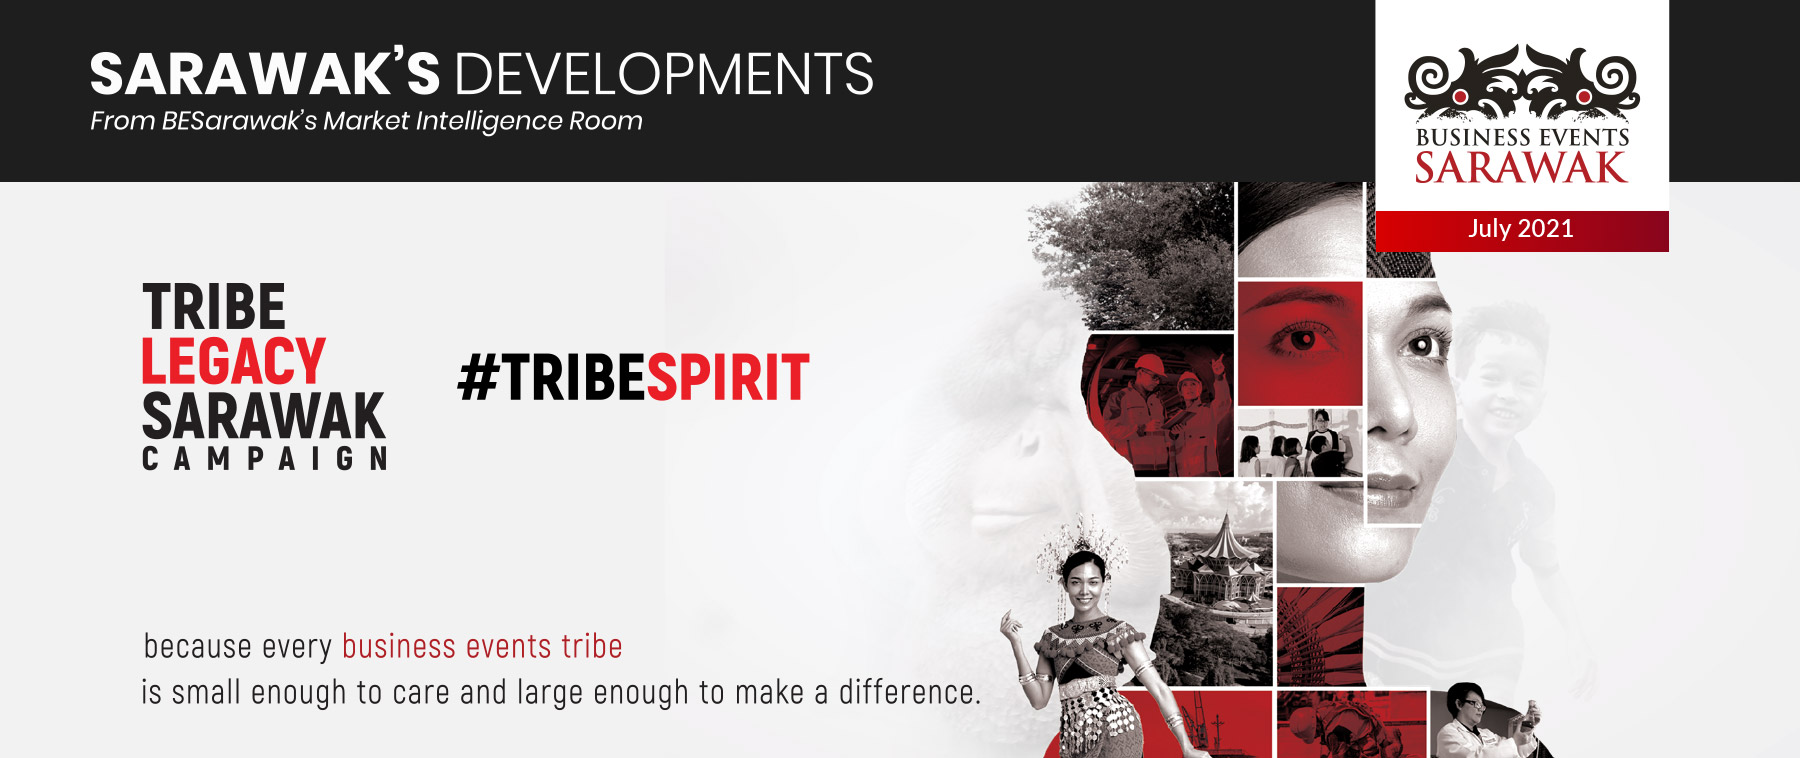 Tribe.Legacy Sarawak - because every business events tribe is small enough to care and large enough to make a difference.